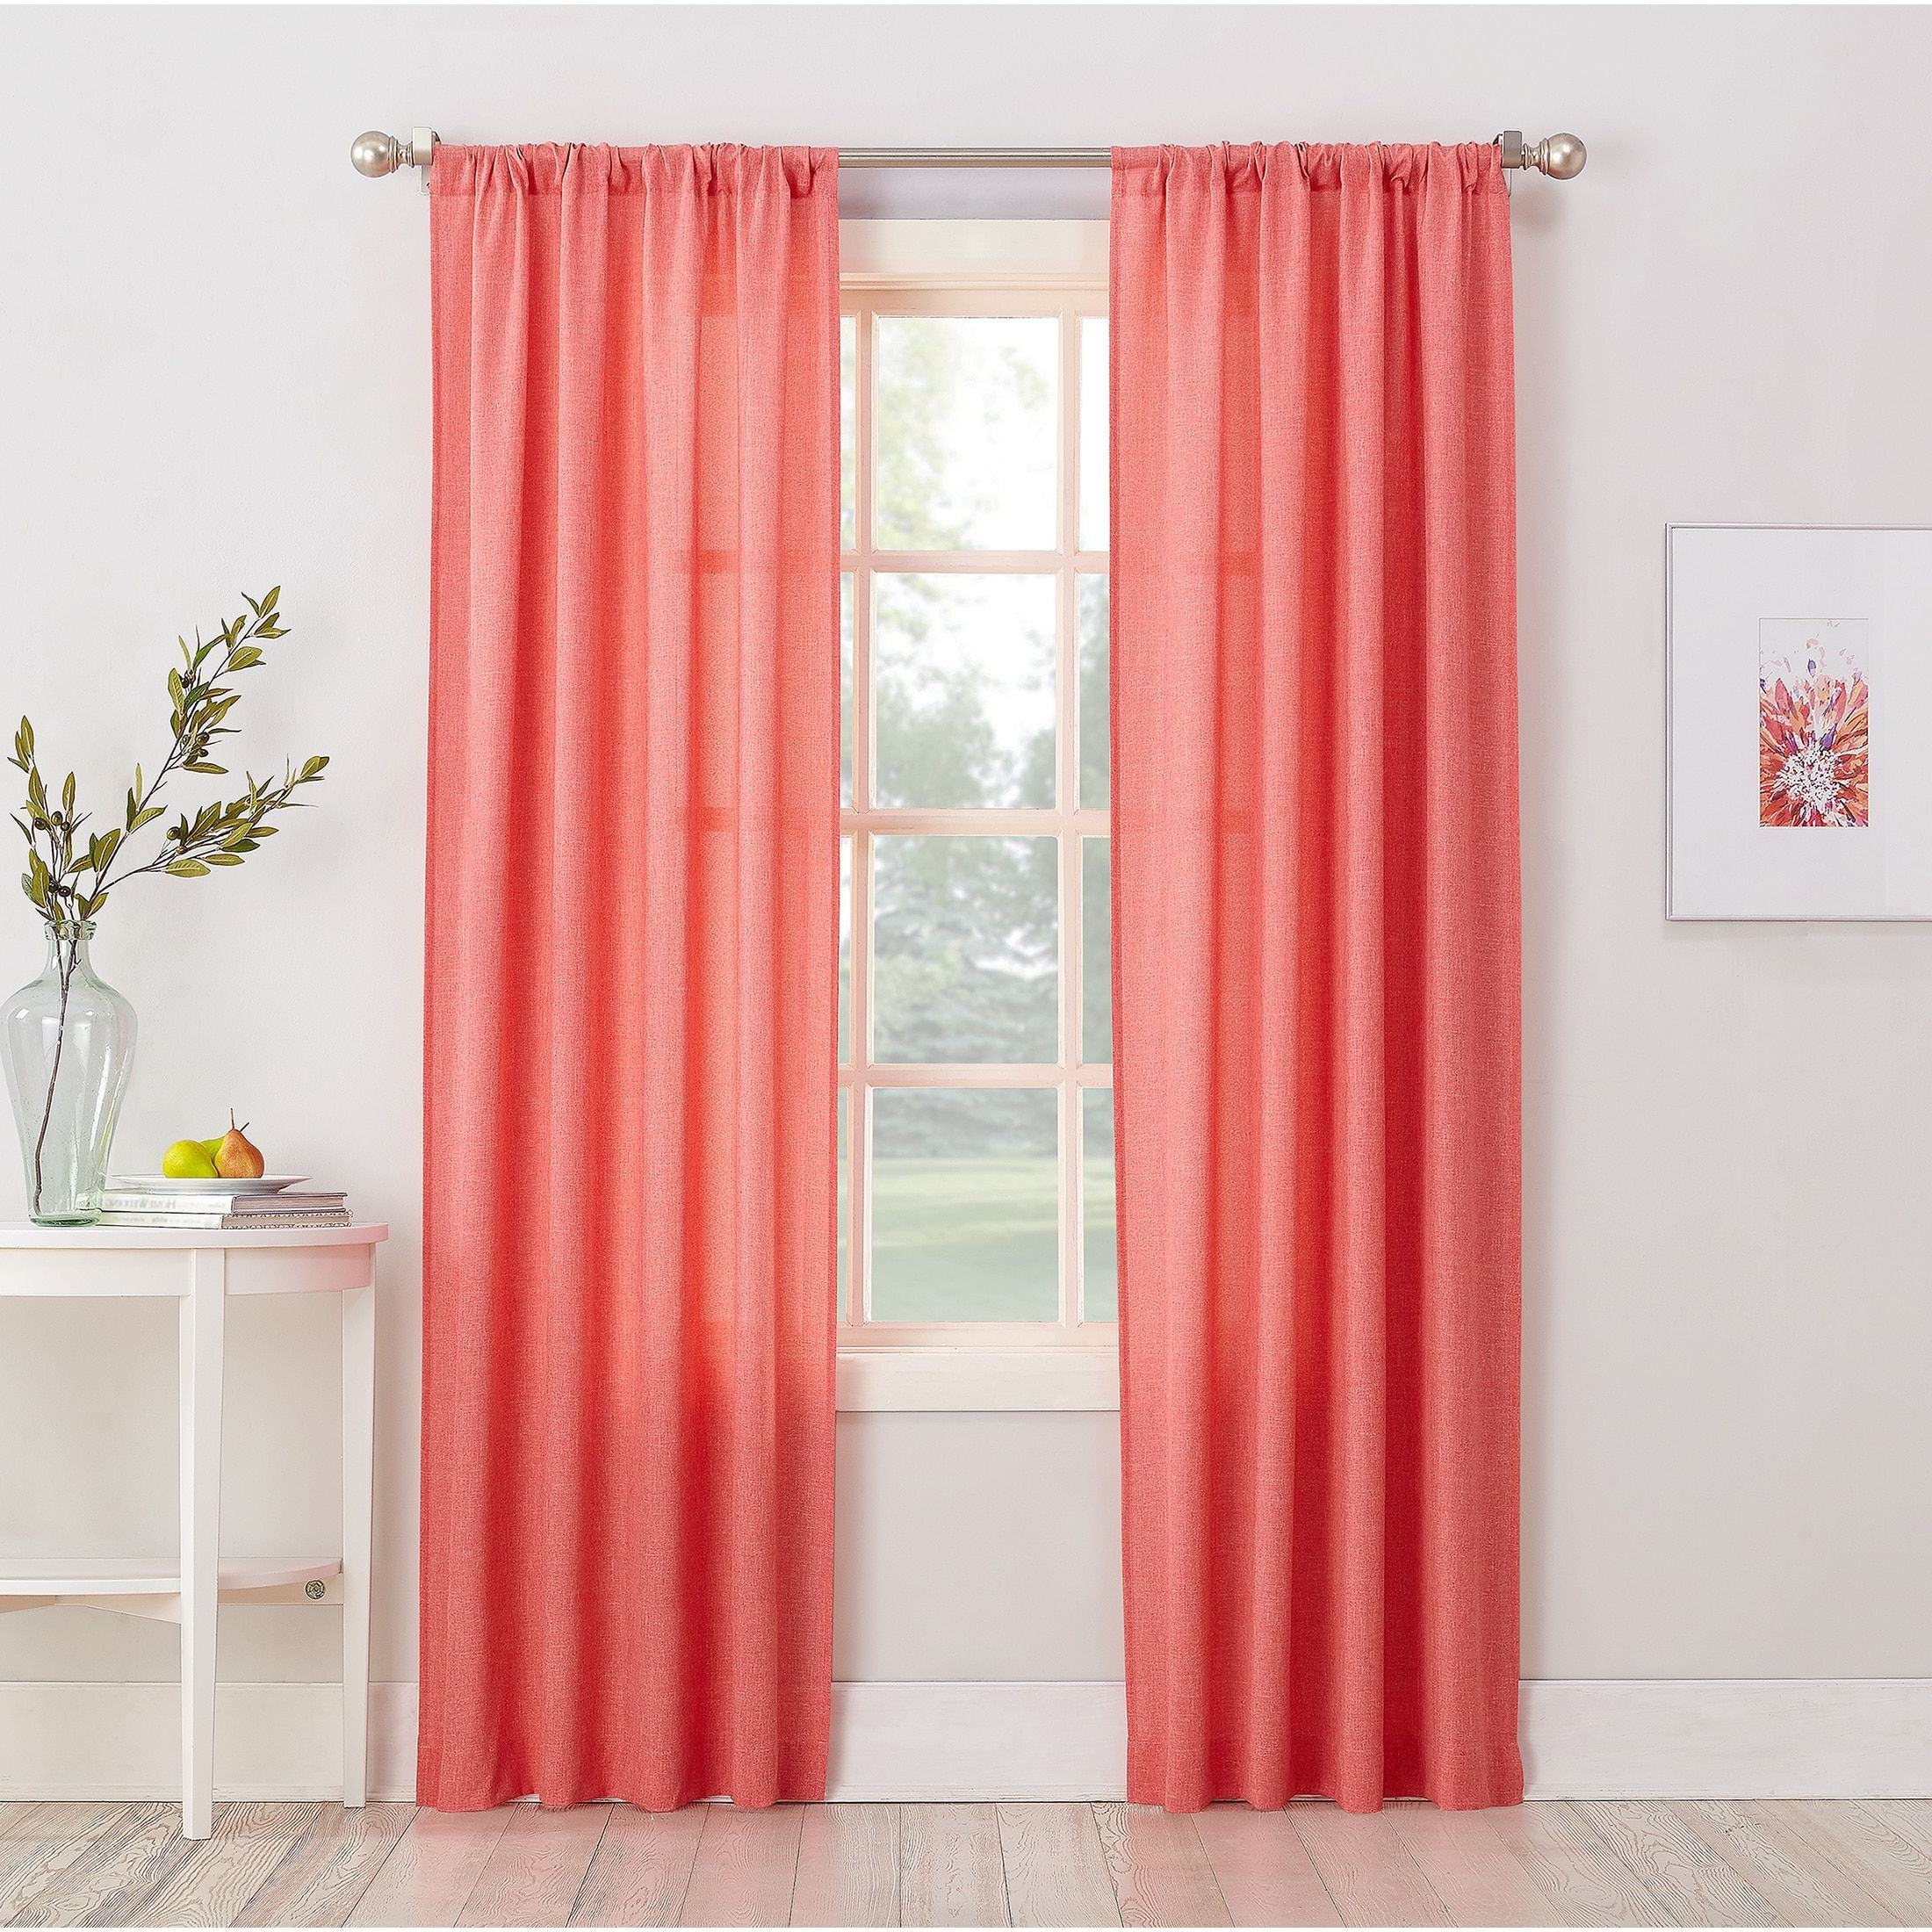 2020 Window Solid Pane Charming Vinyl Panel Pocket Maddie Panels Pertaining To Tuscan Thermal Backed Blackout Curtain Panel Pairs (View 20 of 20)